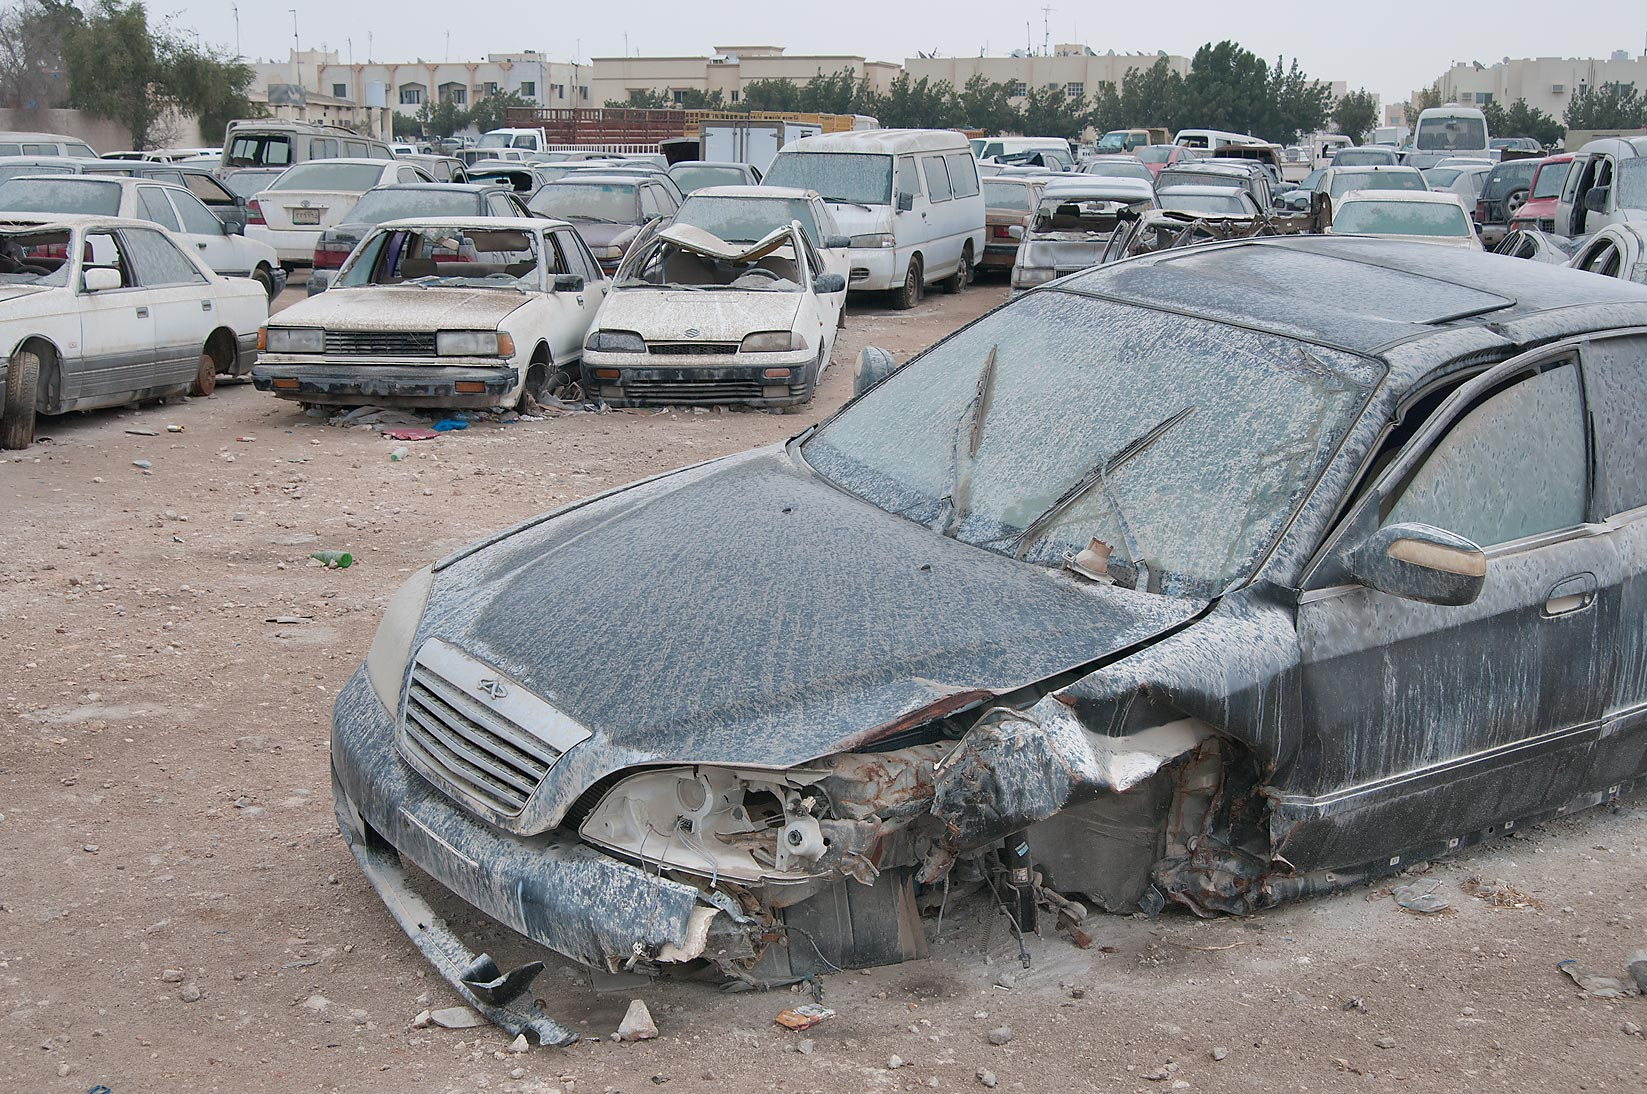 Dusty cars near Al Mamoura Traffic Police and...in Wholesale Markets area. Doha, Qatar